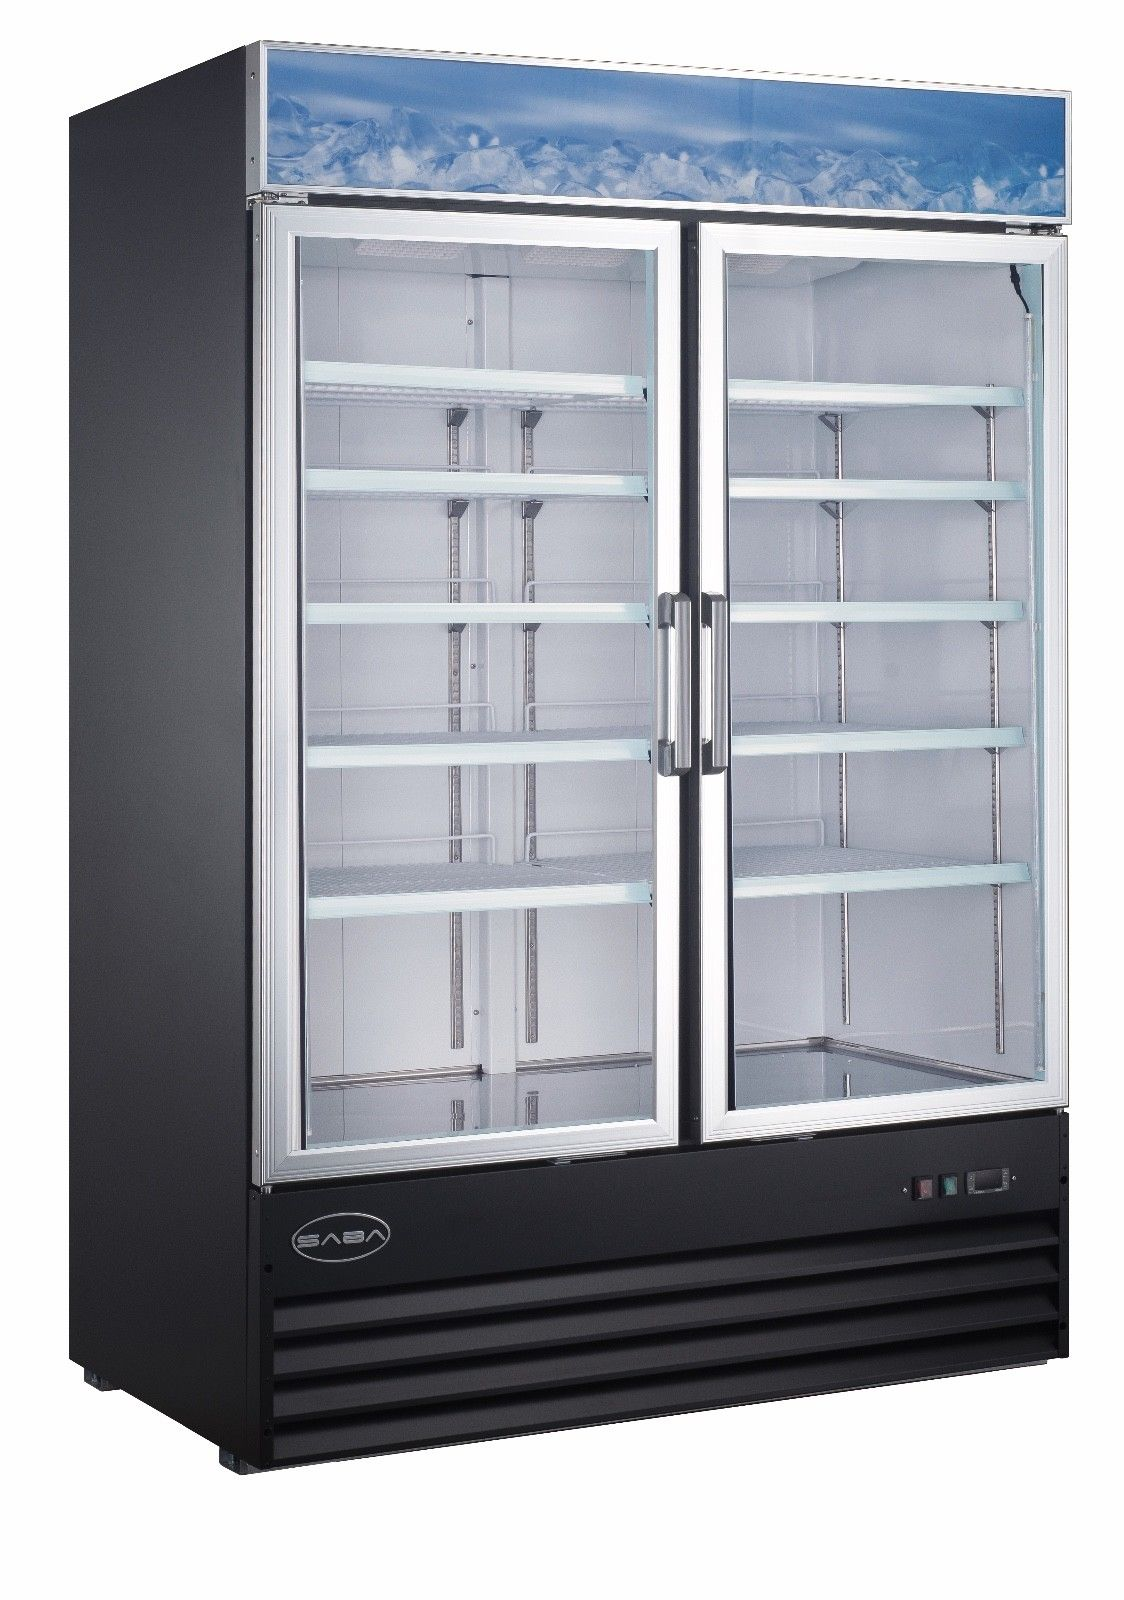 Saba 2 glass door freezer 120 volt free shipping 5 star restaurant equipment - Glass door refrigerator freezer ...